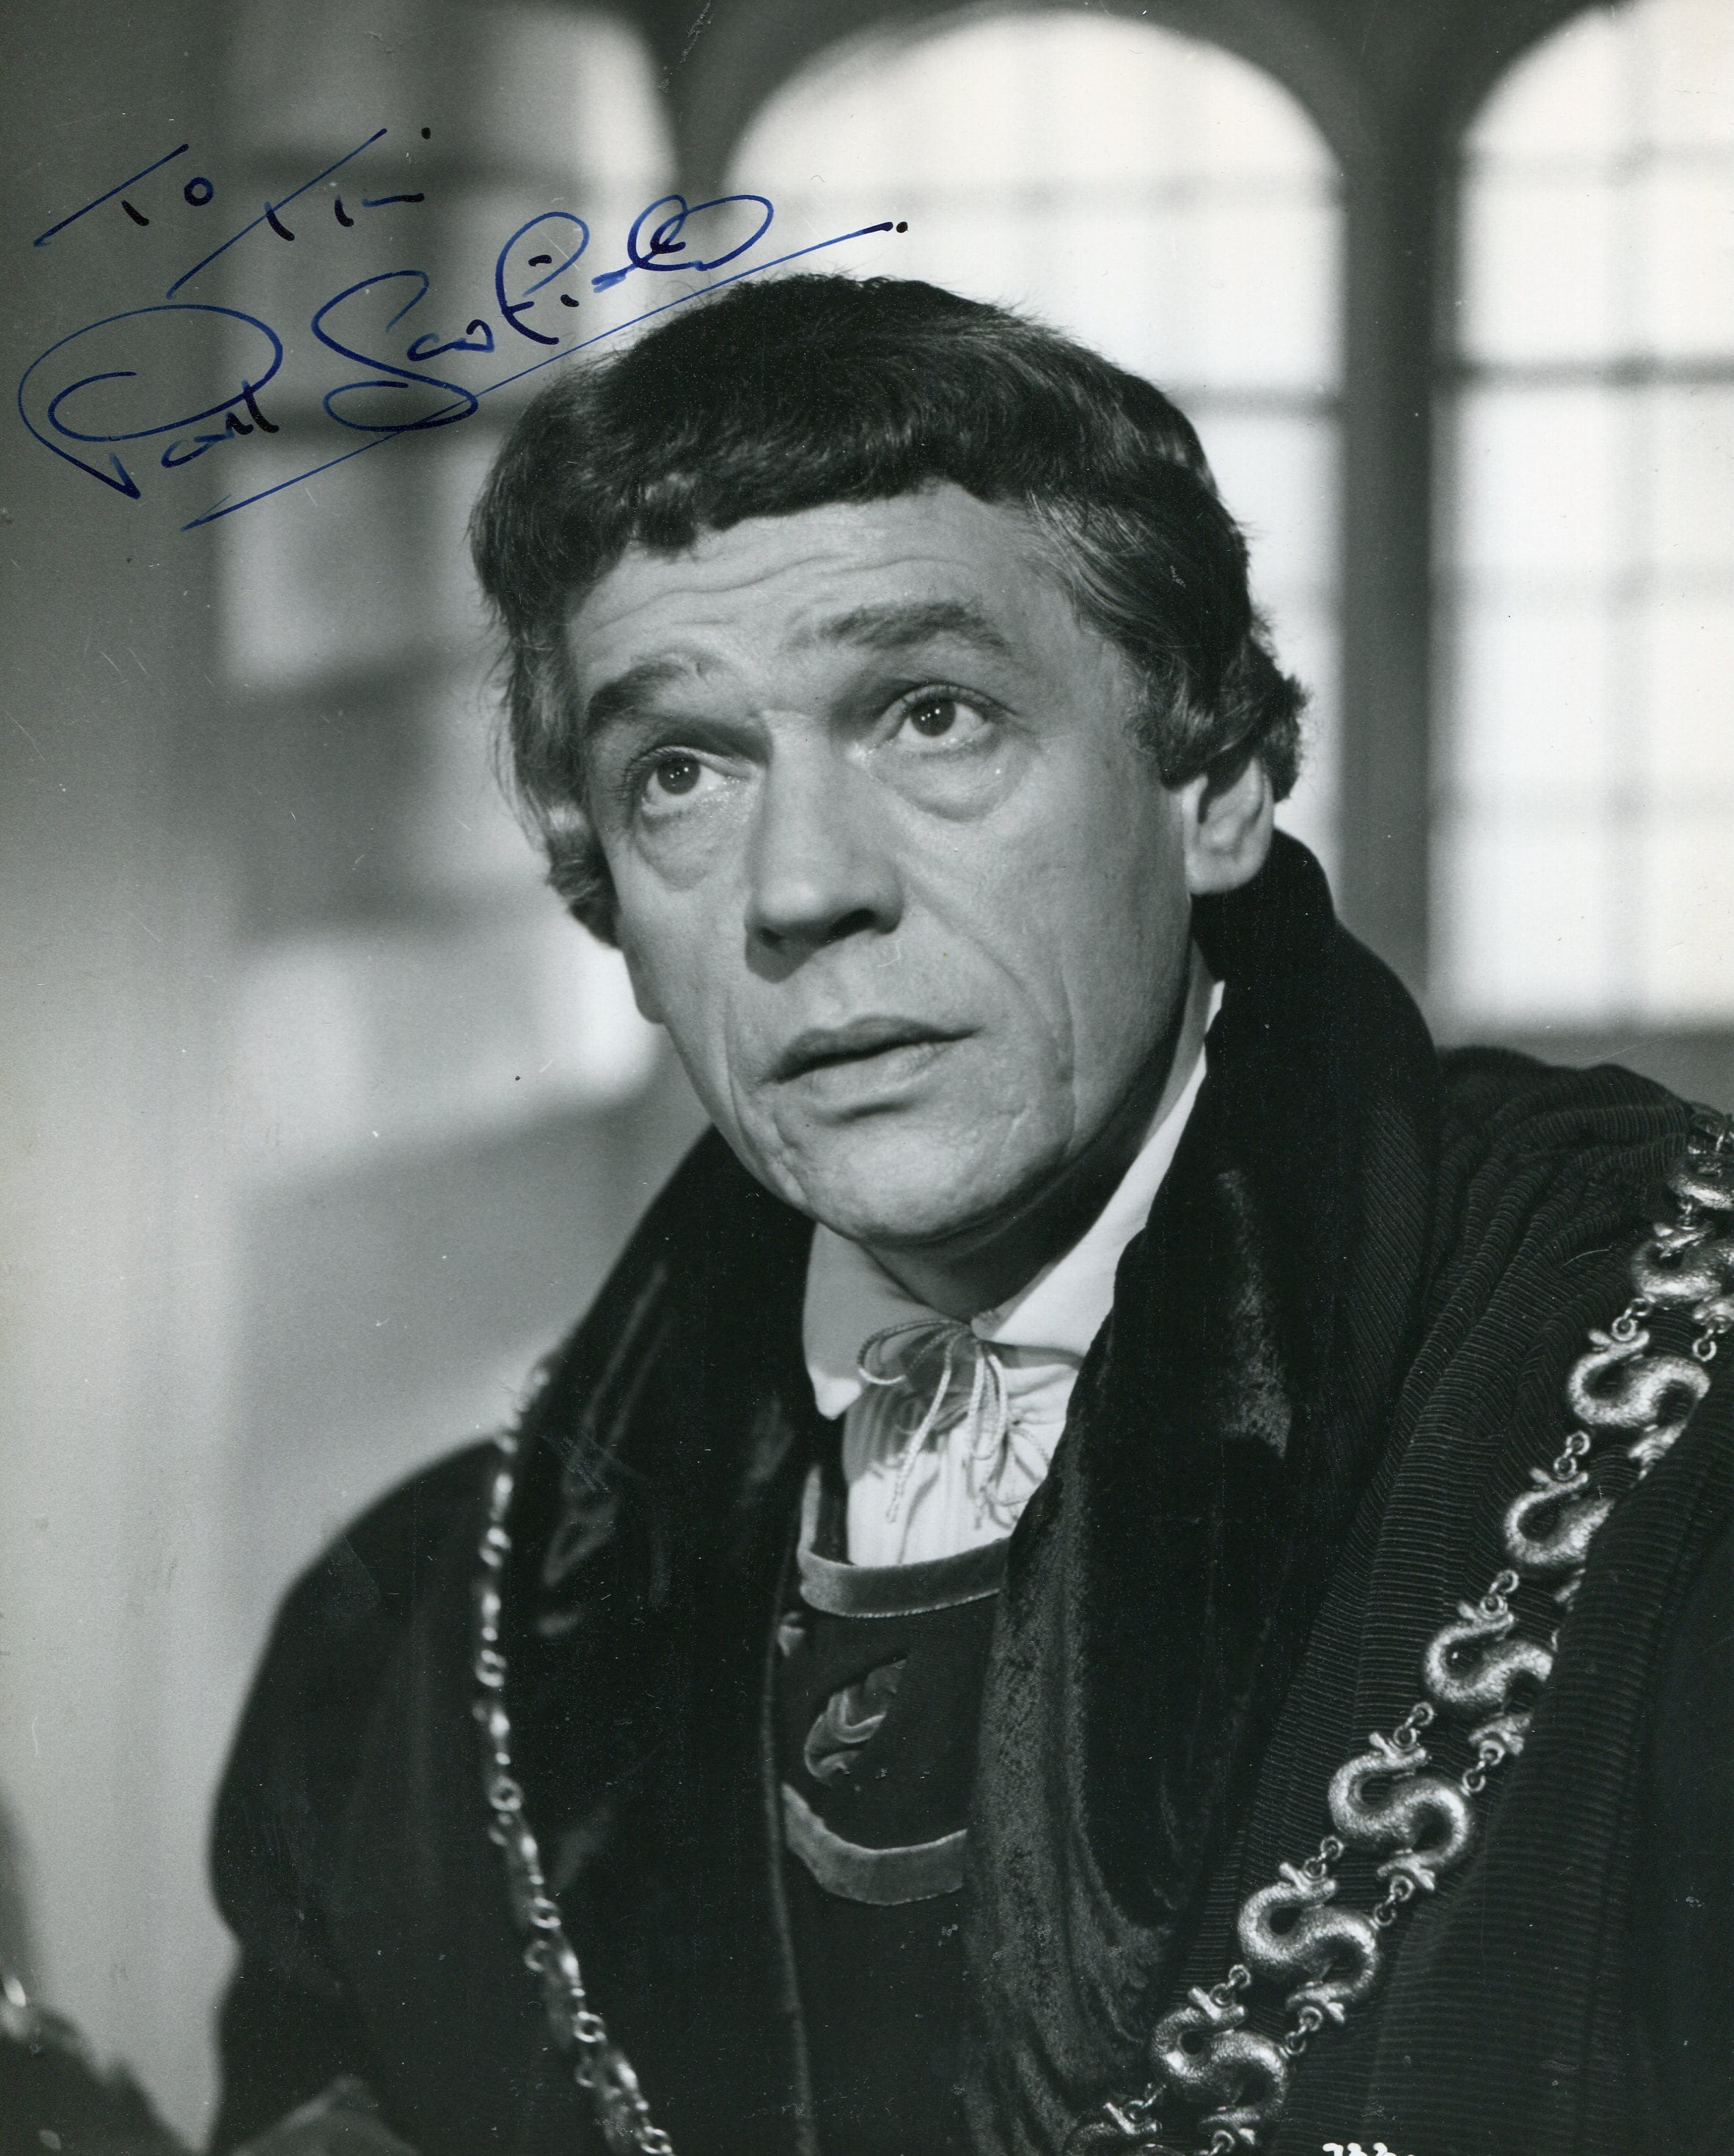 paul scofield actor